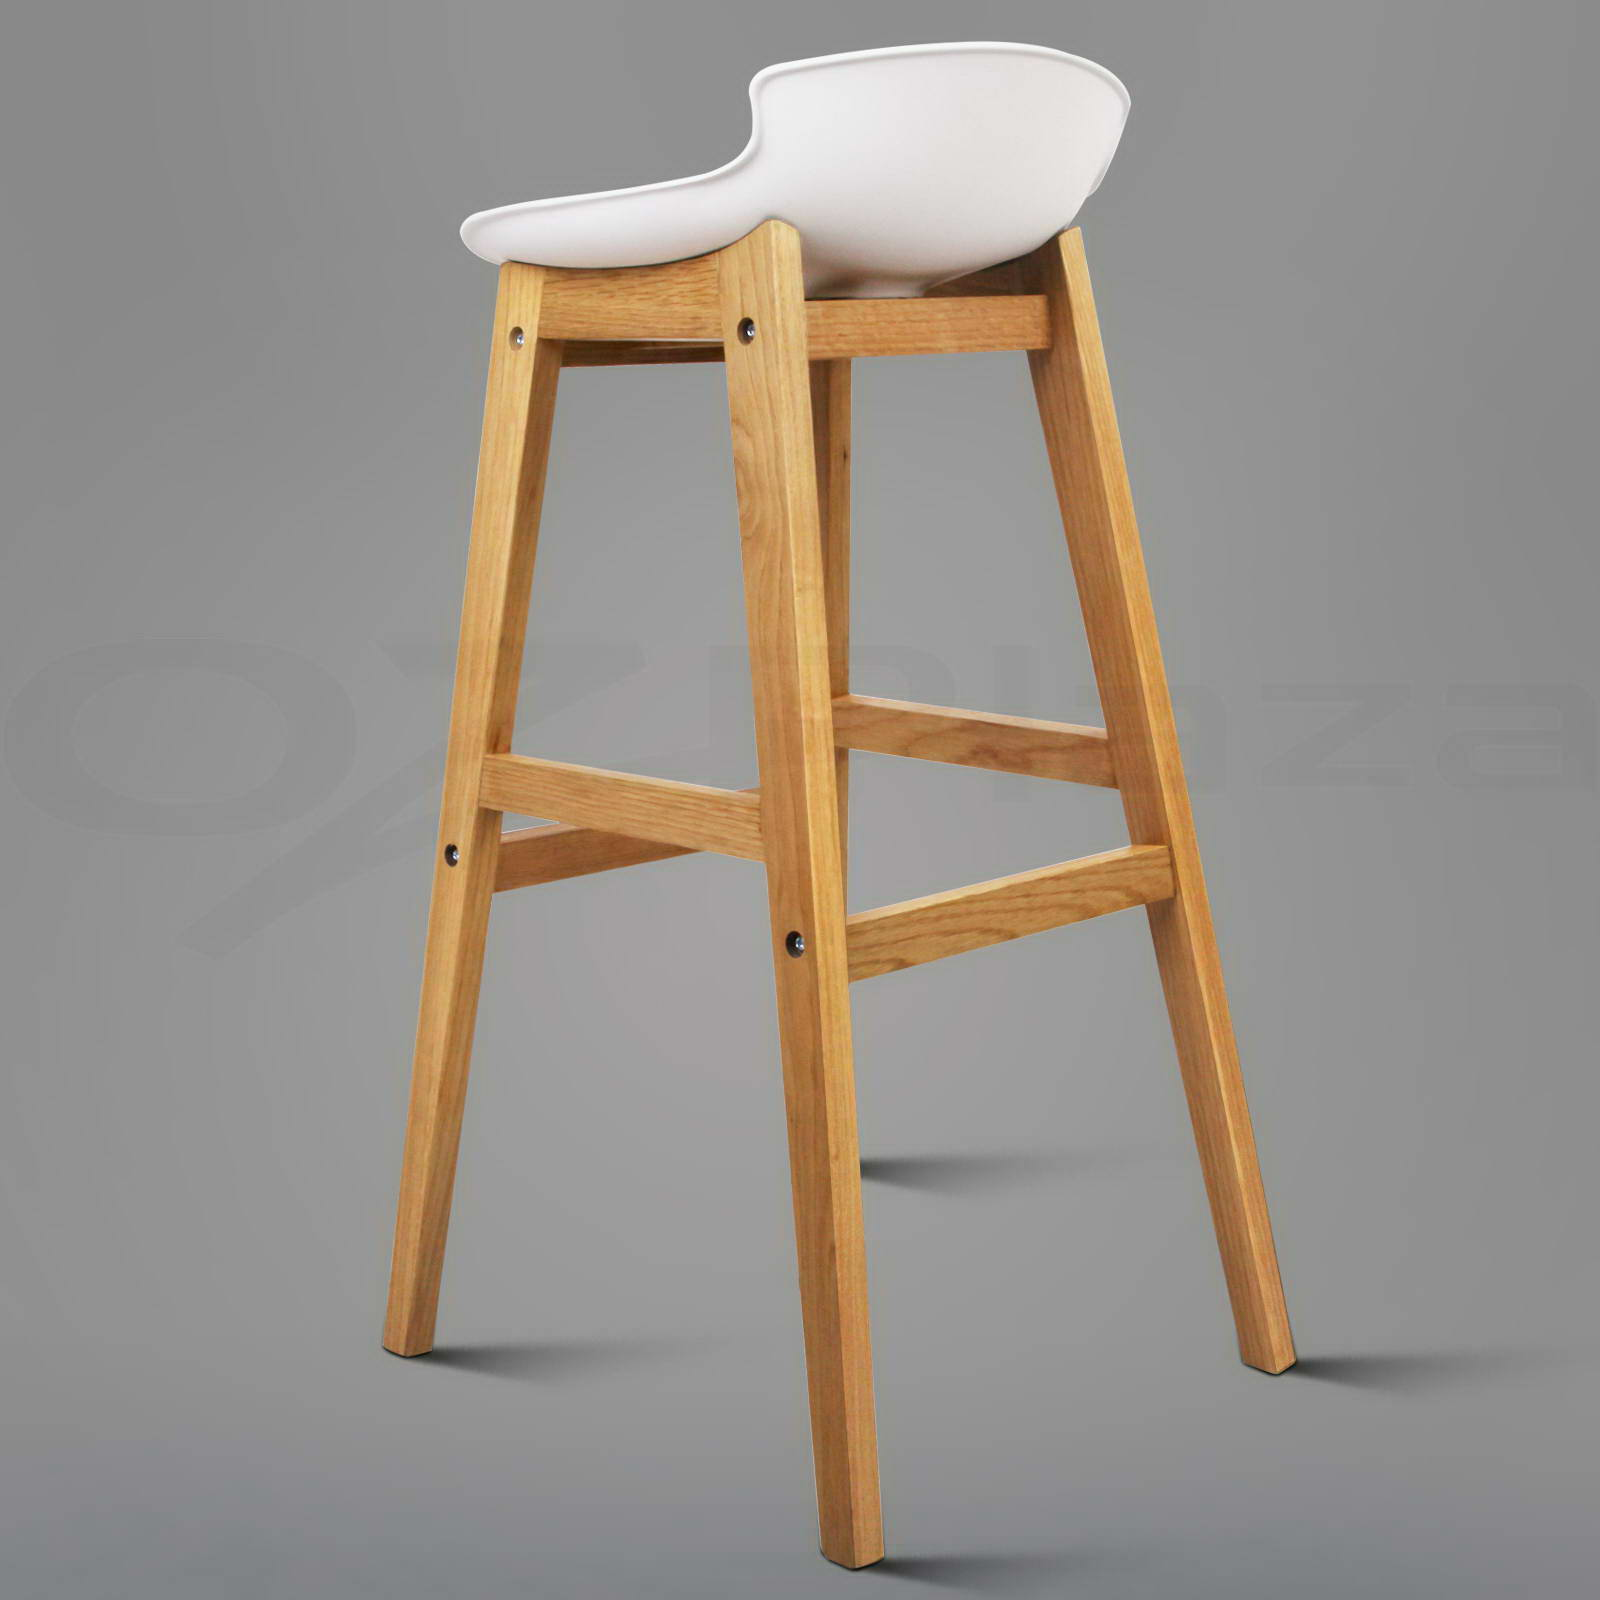 wooden kitchen stools toddler play kitchens 2x oak wood bar barstool dining chairs